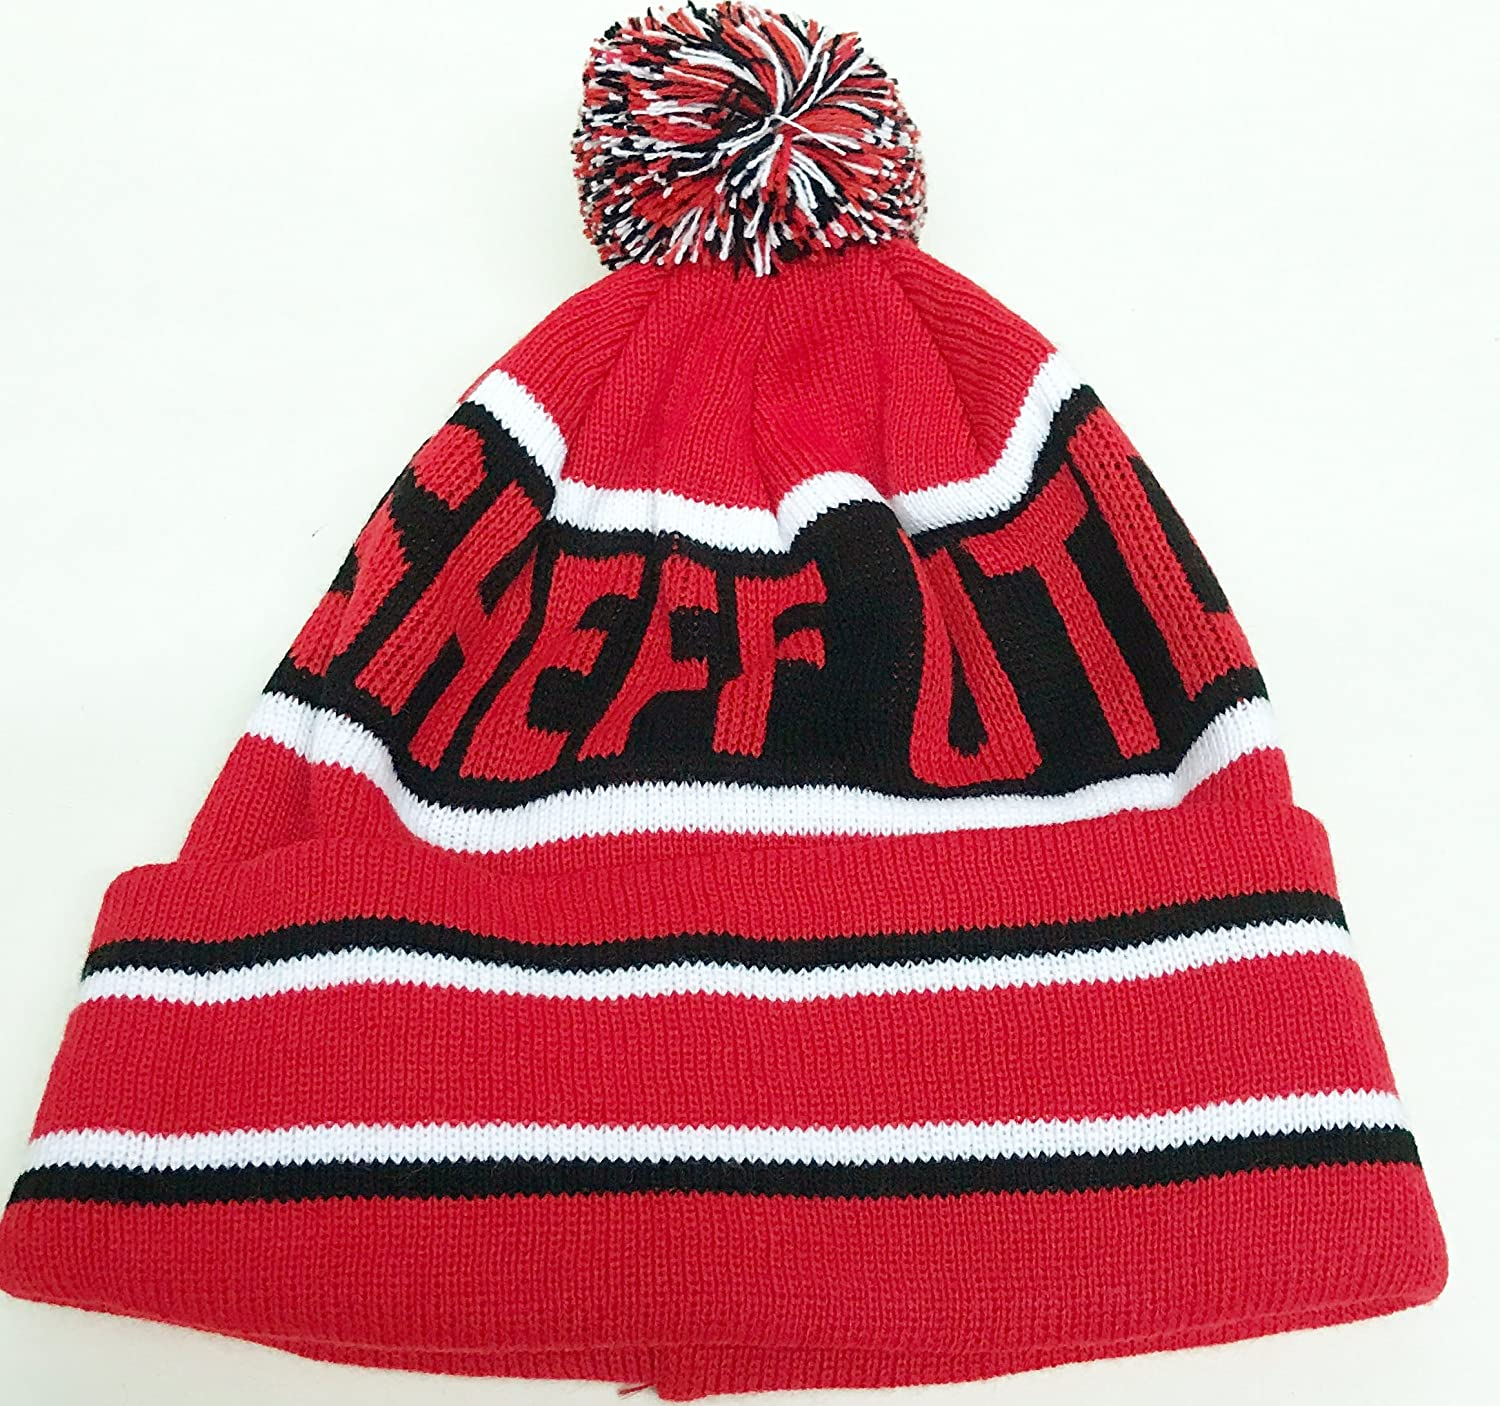 0fd9896cb27 simpsonsfootball Sheffield United Bobble Pom Pom Hat  Amazon.co.uk  Sports    Outdoors